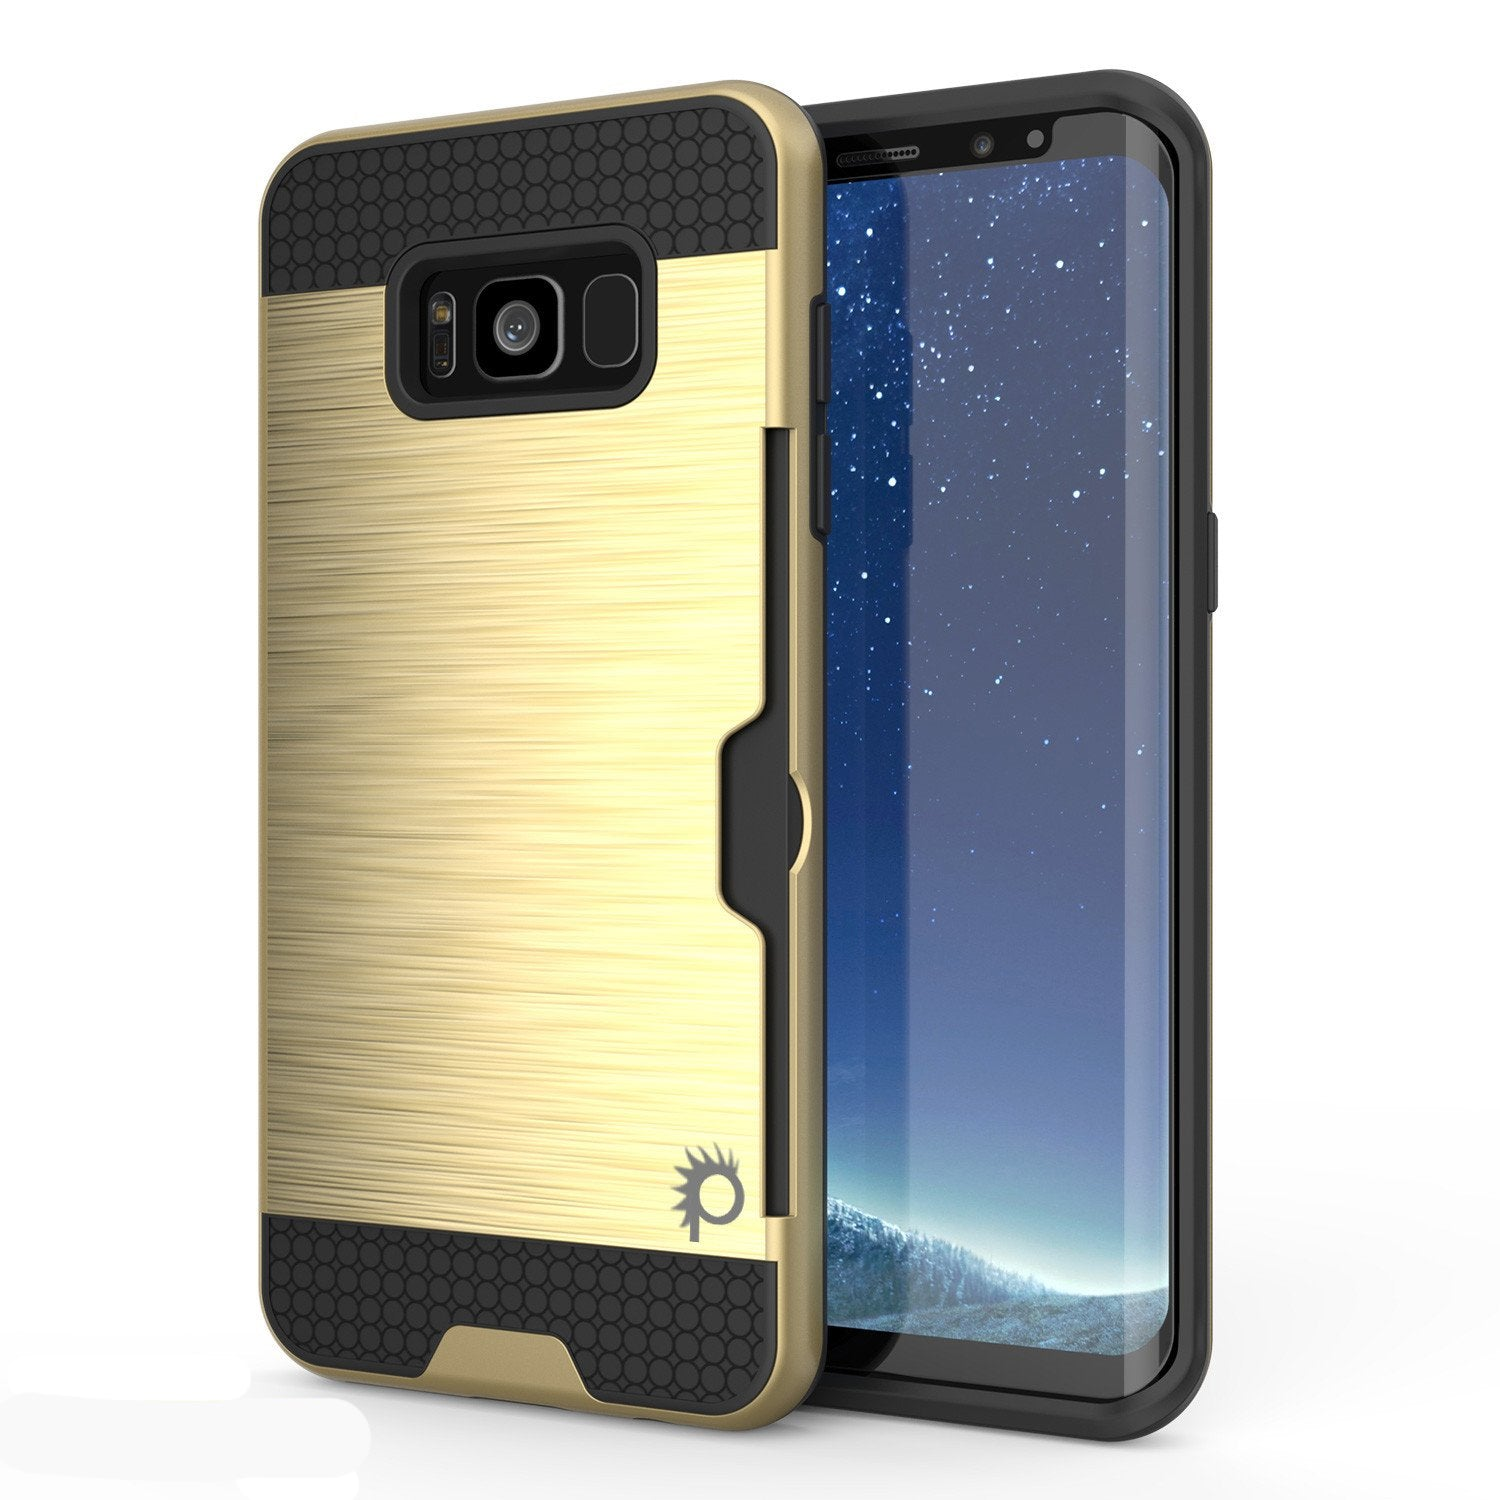 Galaxy S8 Case, PUNKcase [SLOT Series] [Slim Fit] Dual-Layer Armor Cover w/Integrated Anti-Shock System, Credit Card Slot [Gold]